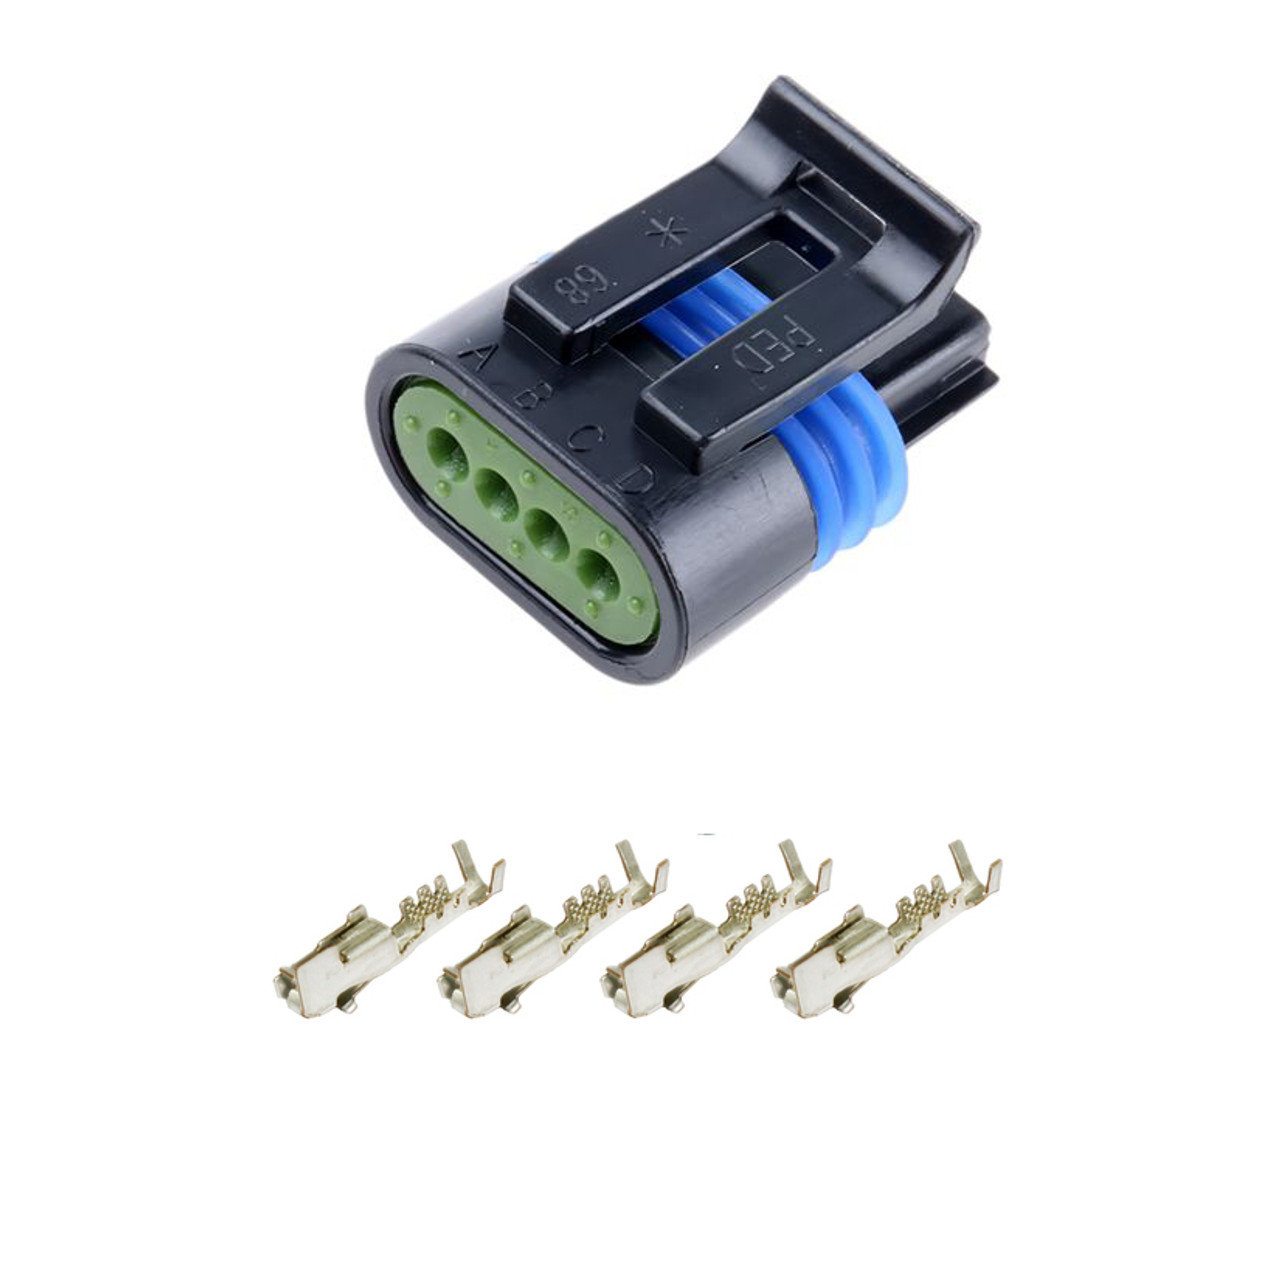 small resolution of delphi metri pack 150 2 series sealed 4 pin female connector kit obd innovations